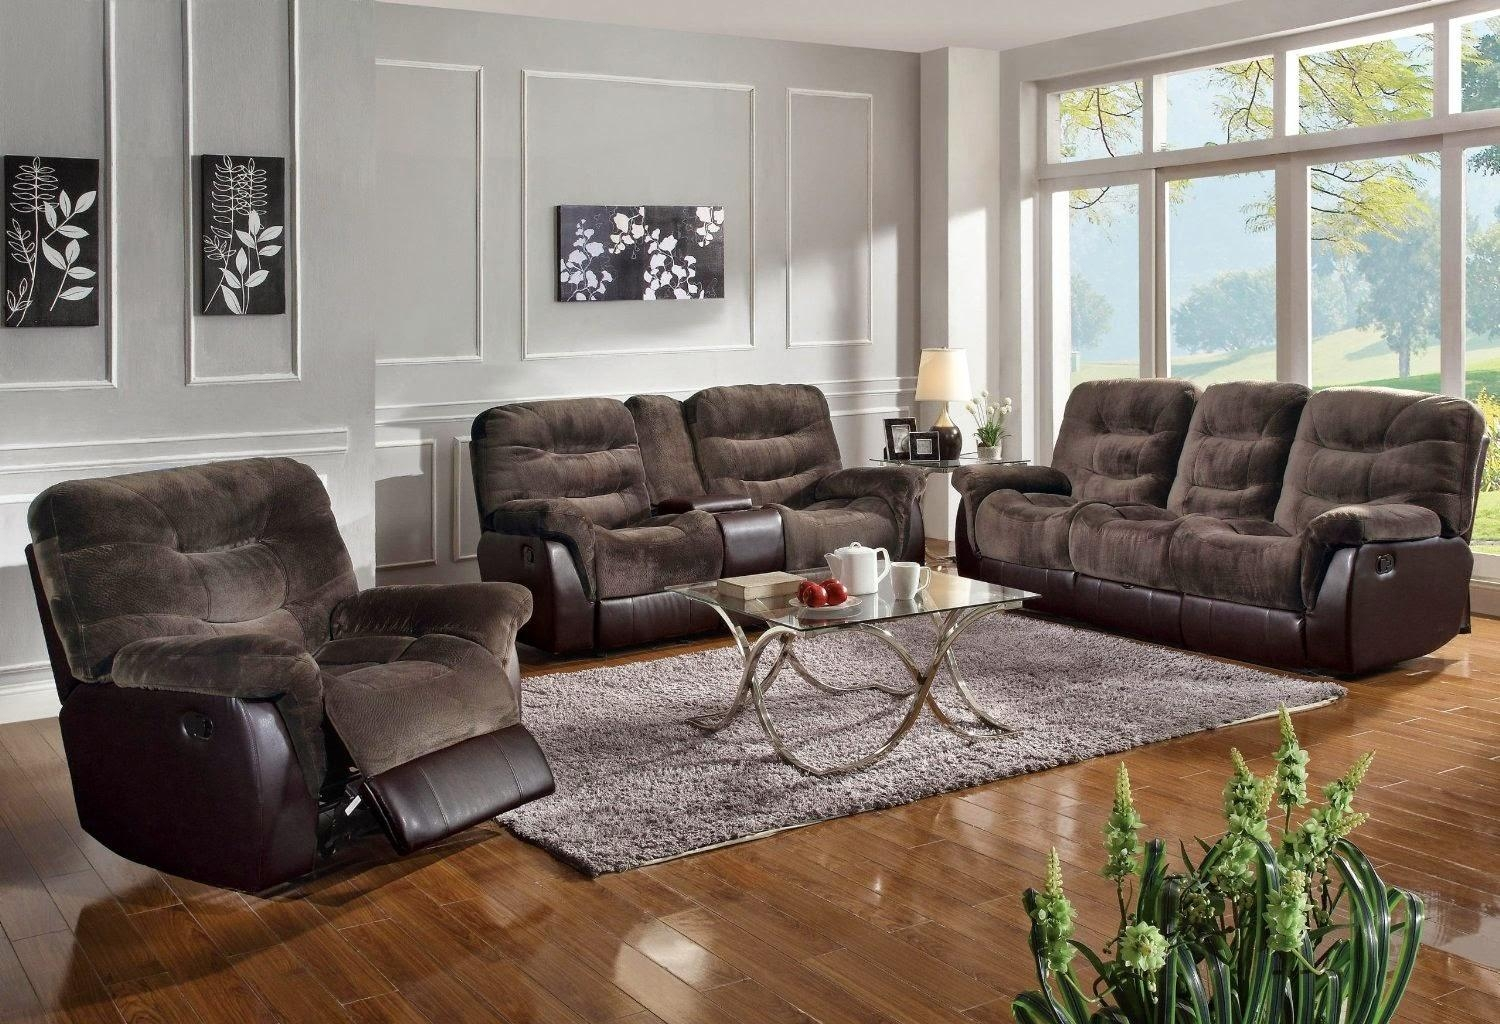 Sofas Center : New Sectional Sofas Houston For Cindy Crawford With Throughout Houston Sectional Sofa (Image 14 of 20)